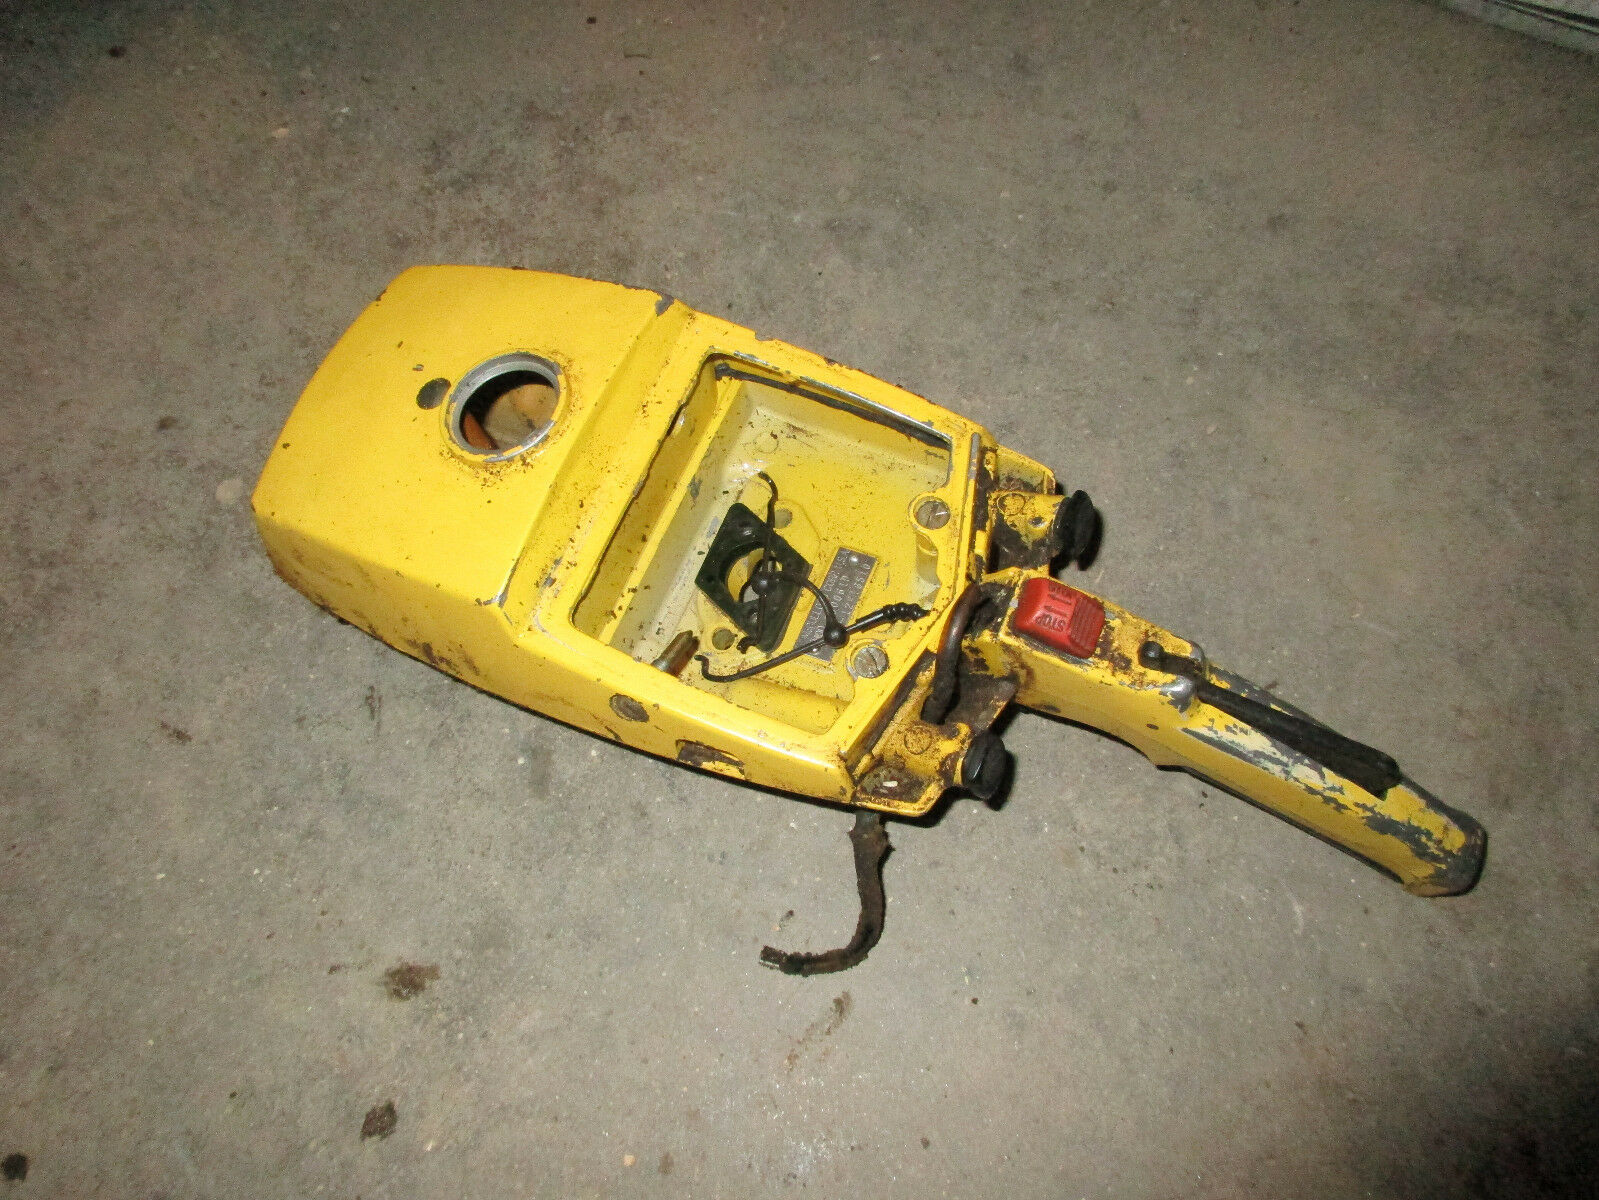 McCulloch Pro Mac 10-10 555 10-10A 700 10-10S Chainsaw Gas 1 of 6 See More